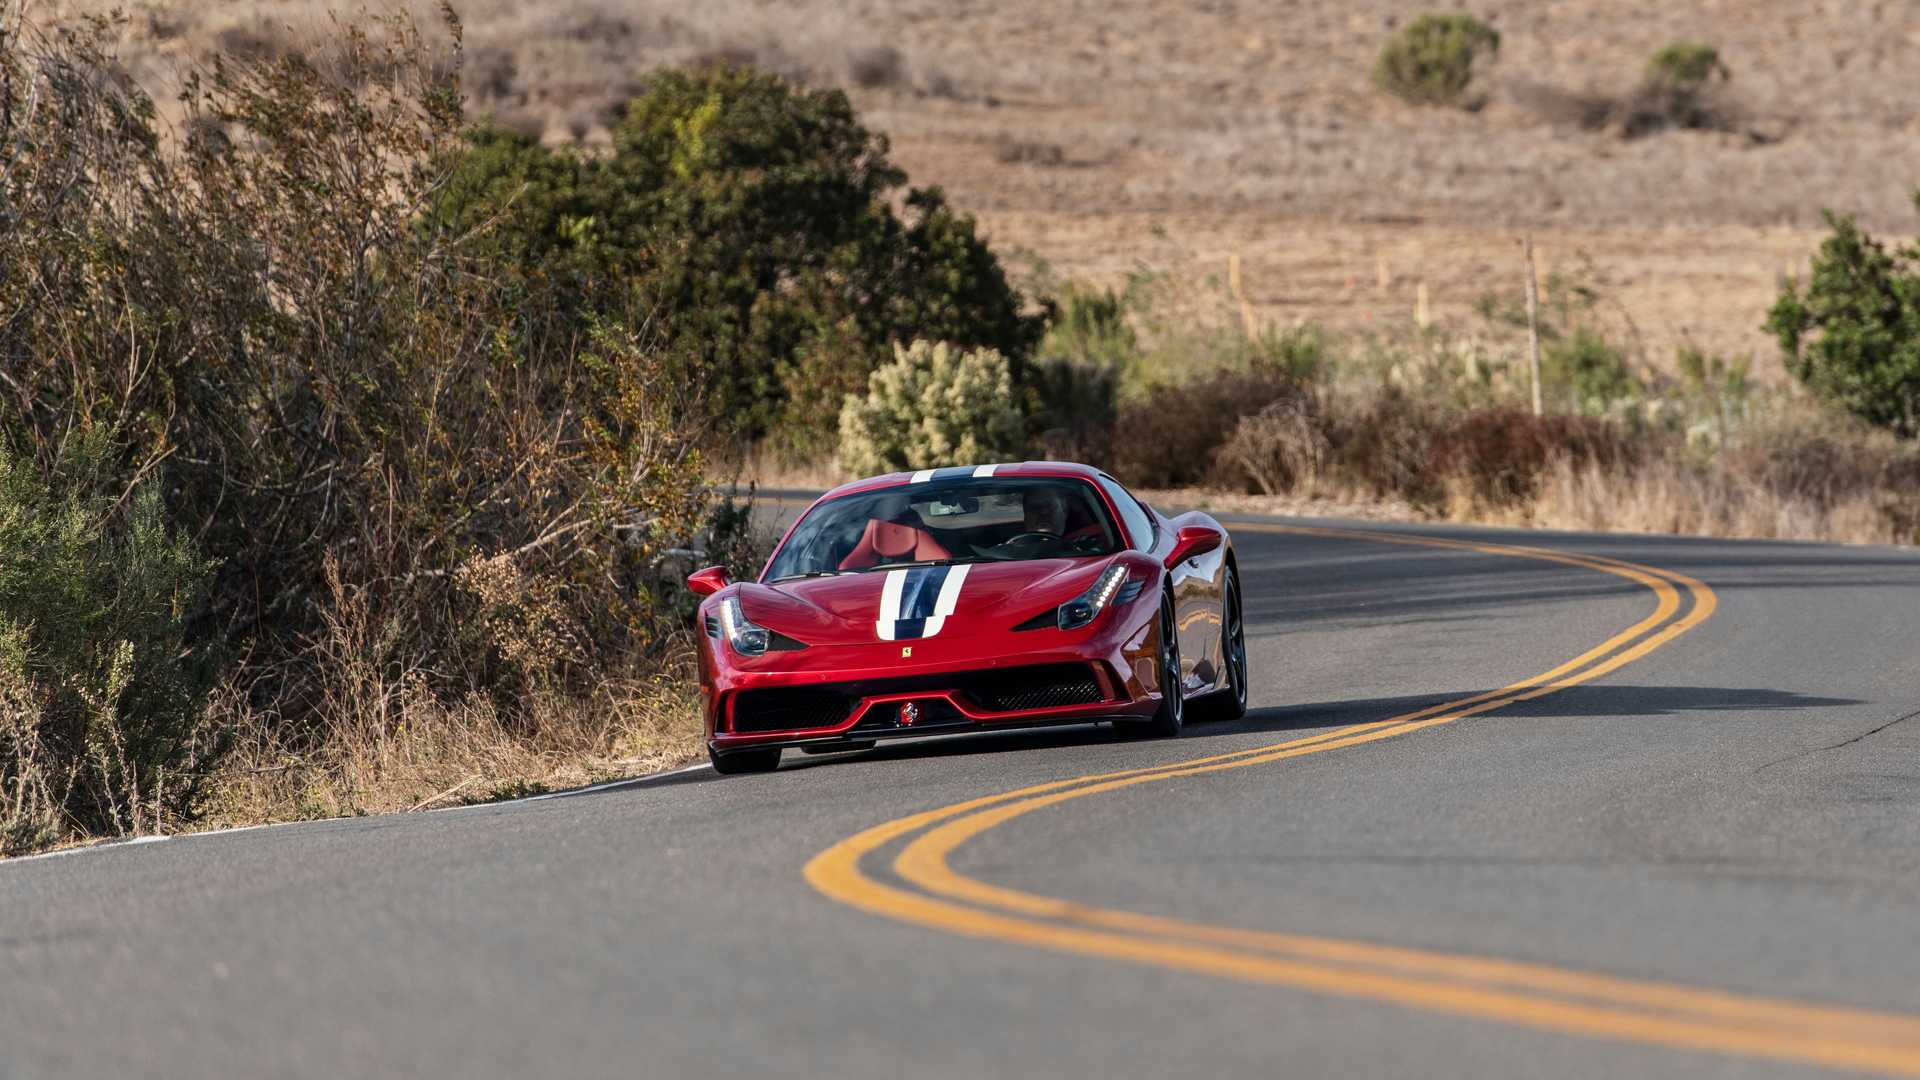 Bulletproof Ferrari 458 Speciale By AddArmor Front View